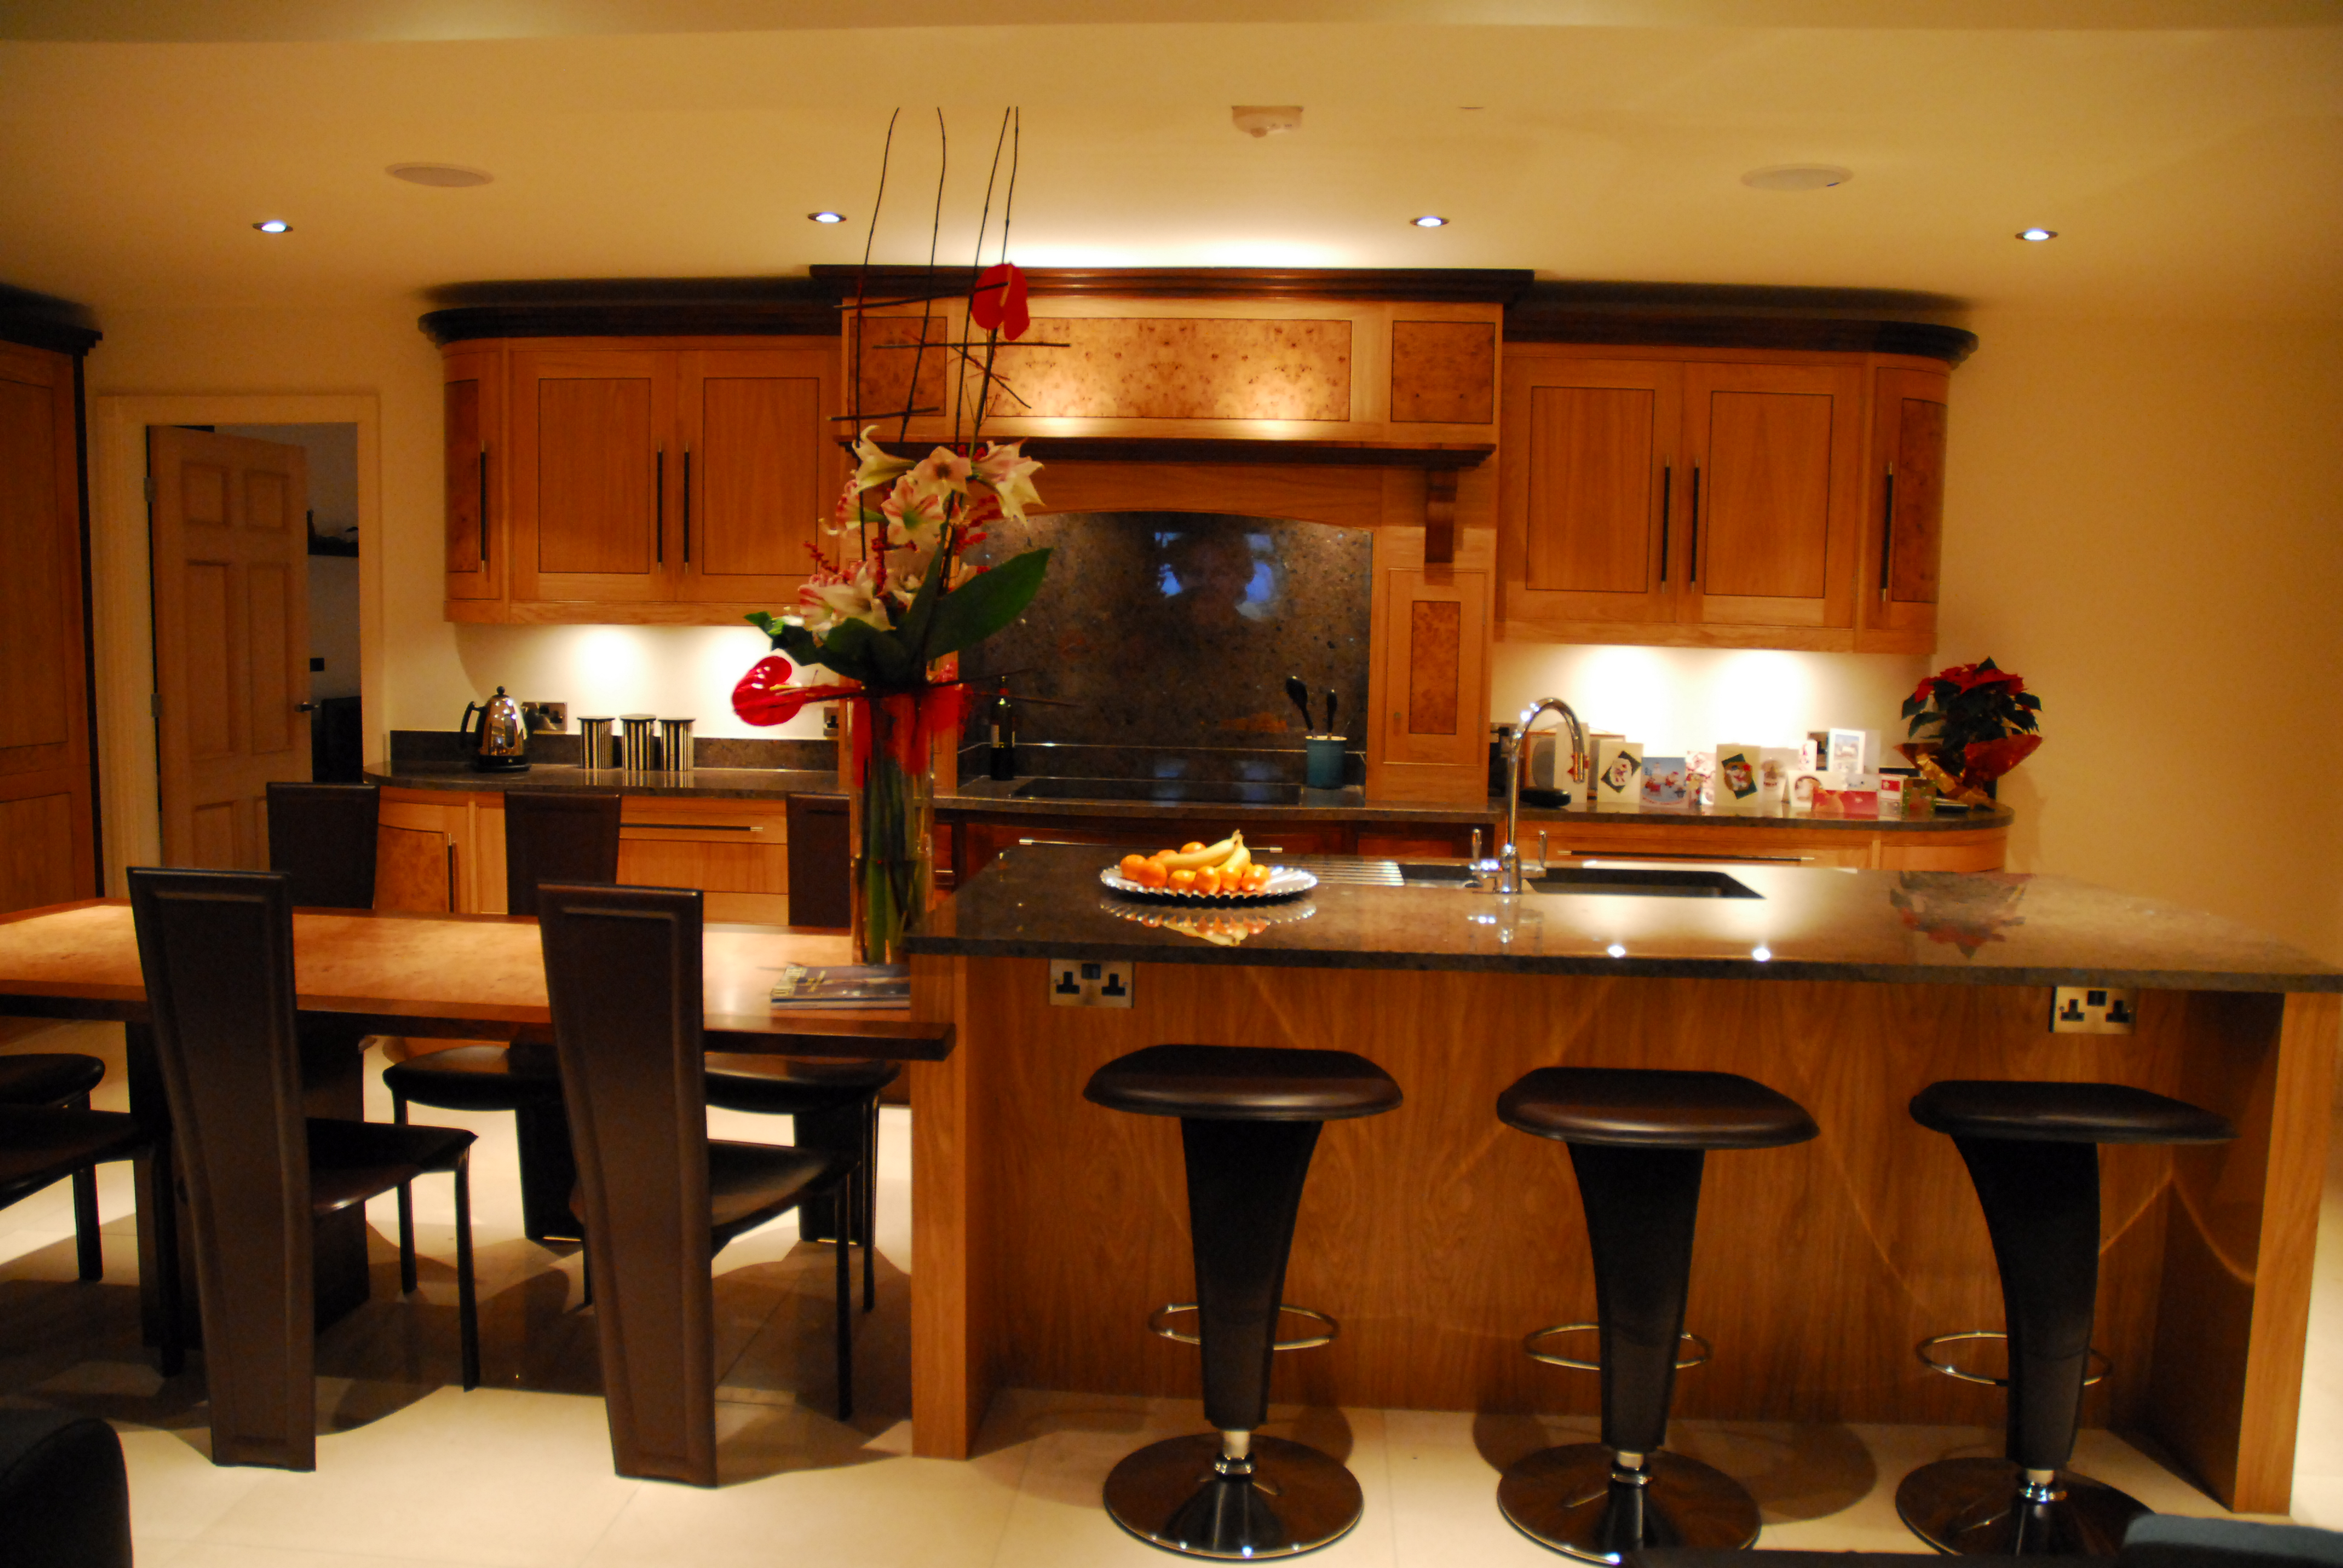 The Barcelona Kitchen By Acanthus Featuring Oak Amp Walnut